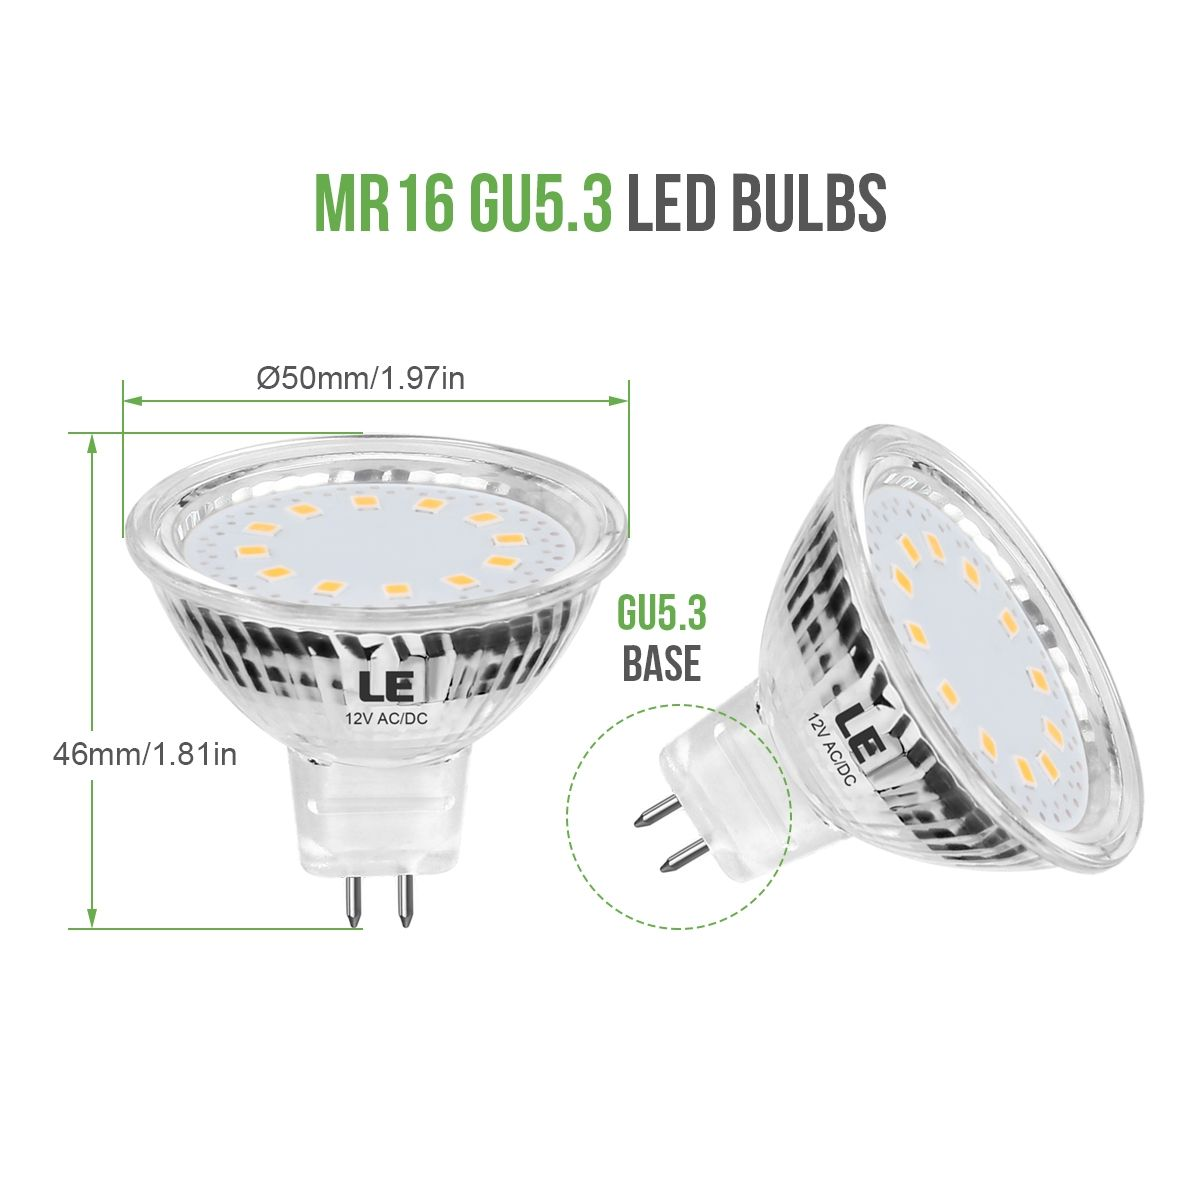 Le Mr16 Gu5 3 Led Light Bulbs Non Dimmable Clear Lens 12v Ac Dc 35w Halogen Equivalent 2700k Warm White 3 5w 330lm 12 With Images Led Light Bulbs Led Bulb Led Lights